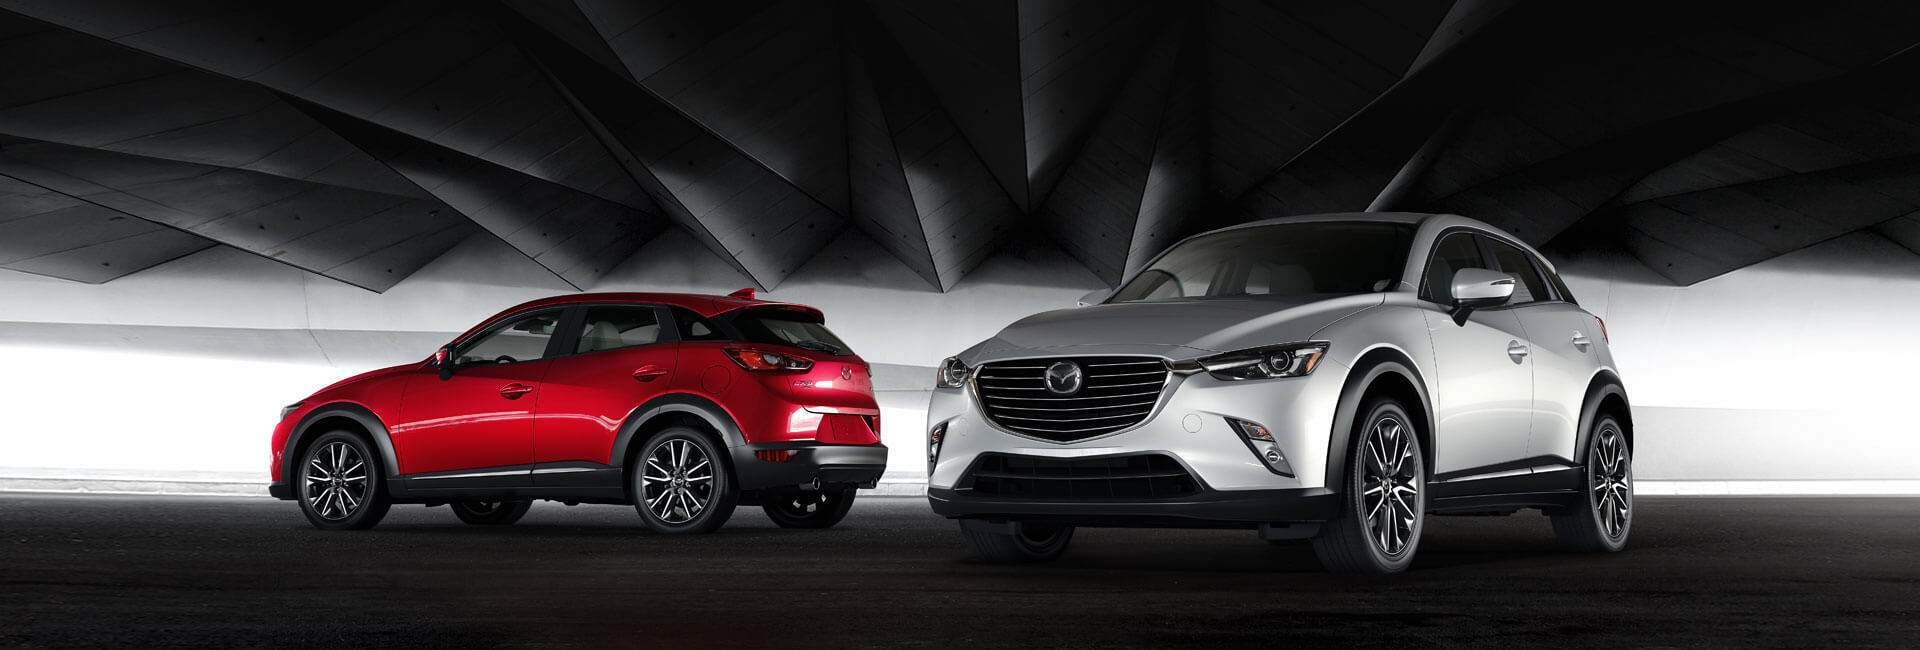 2017 Mazda CX-3 in Watertown